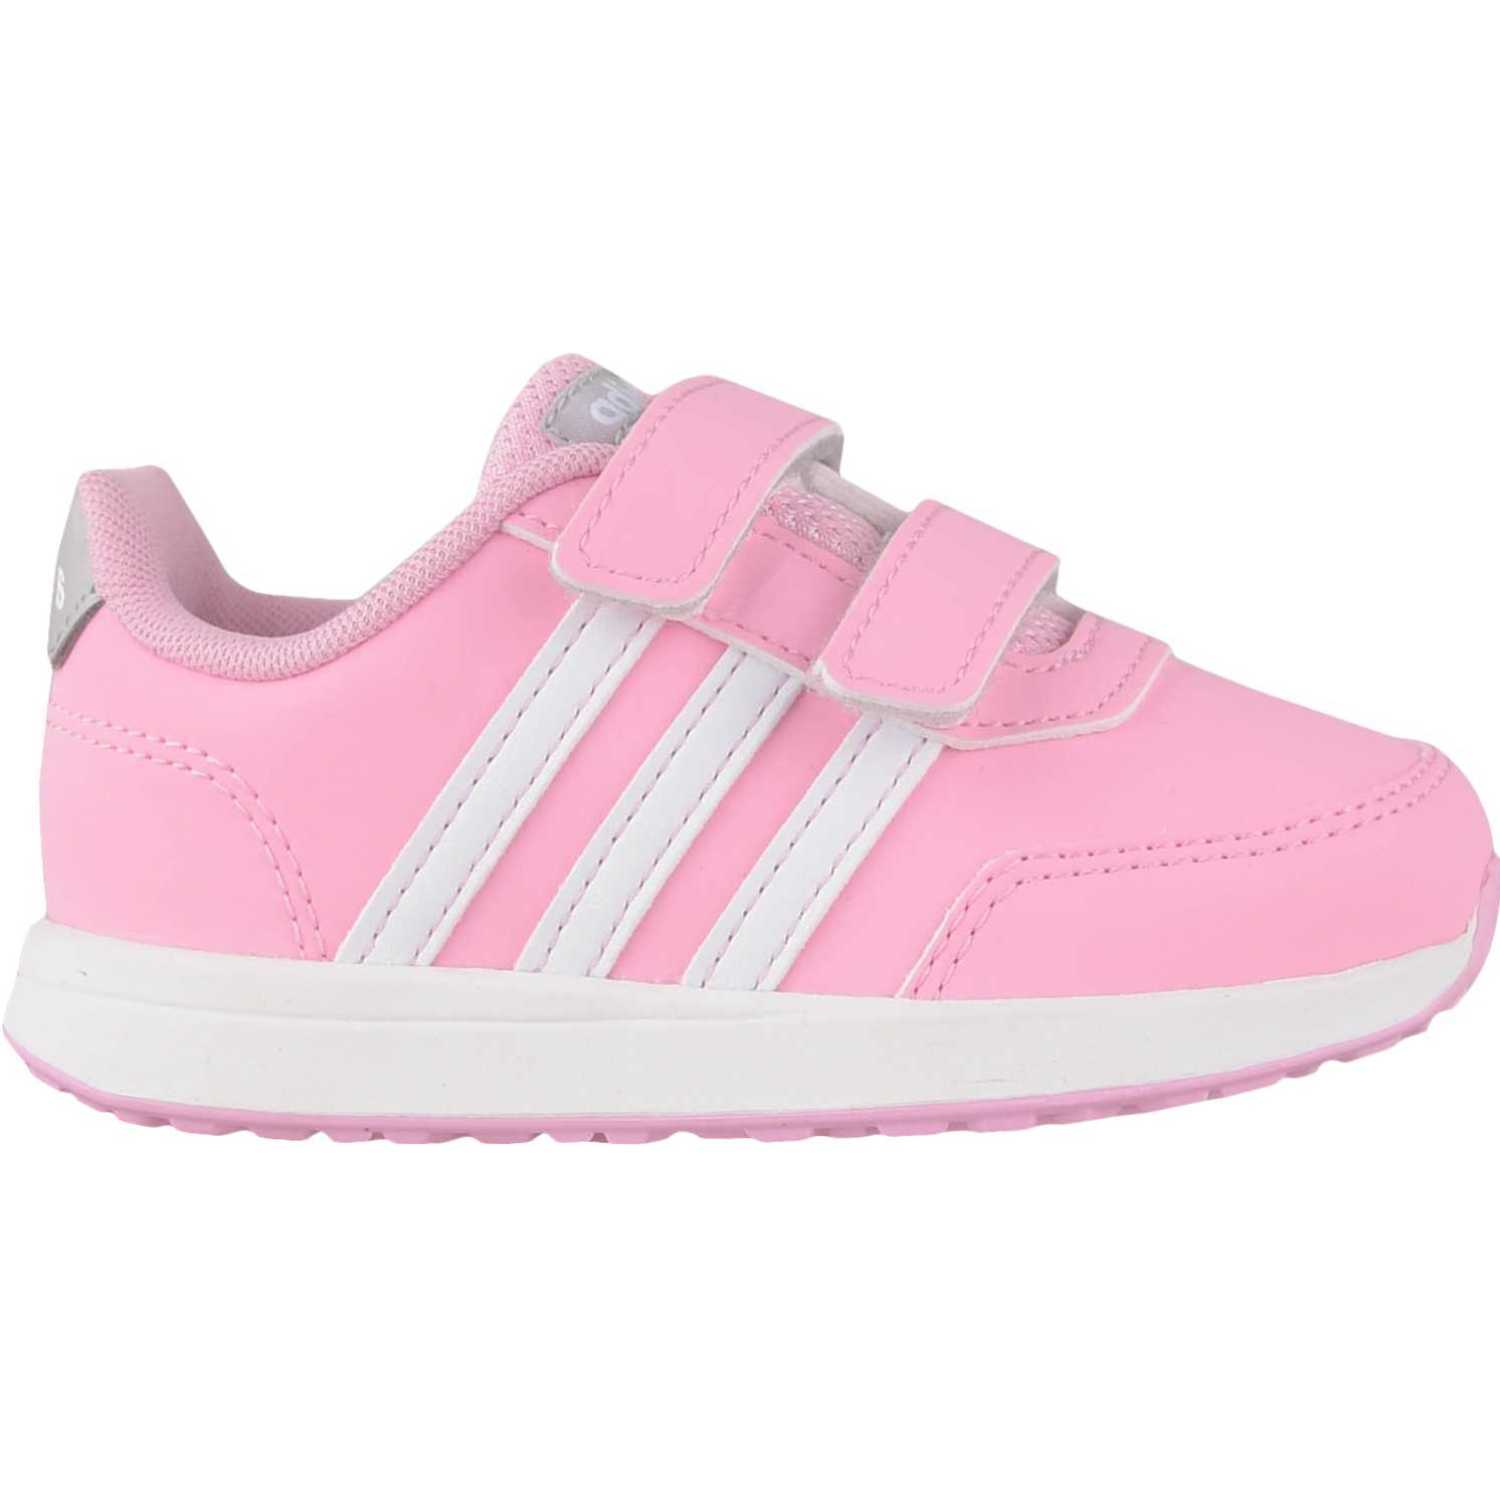 Casual de Niña Adidas Rosado / blanco vs switch 2 cmf inf